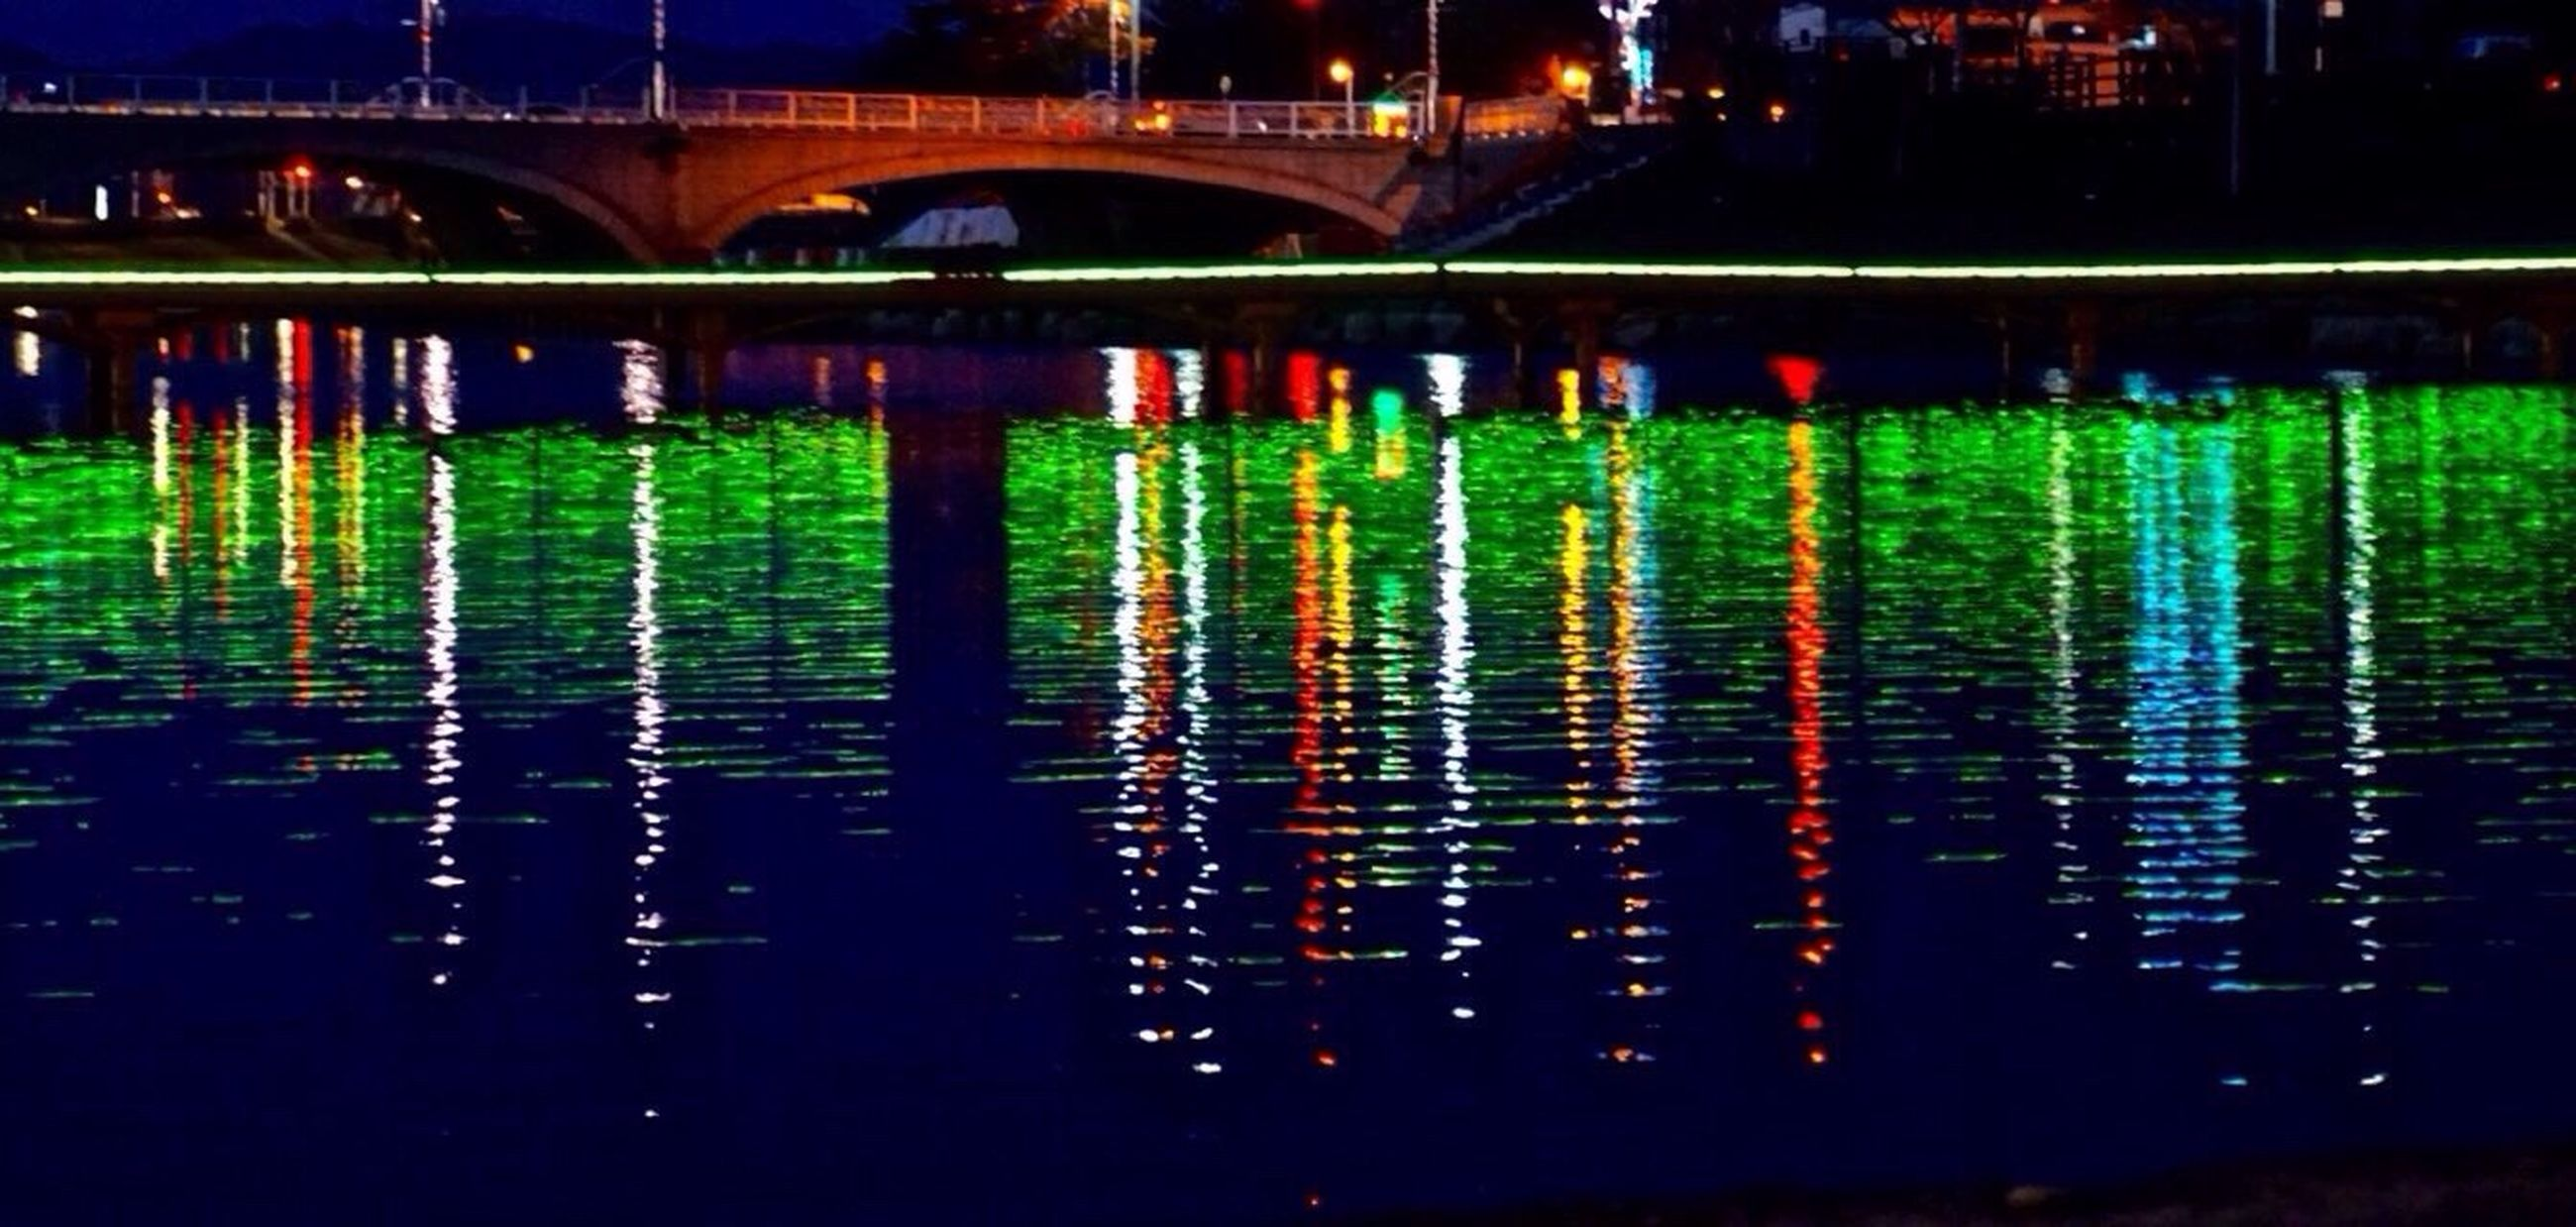 illuminated, night, water, reflection, built structure, architecture, river, waterfront, building exterior, city, outdoors, no people, bridge - man made structure, light - natural phenomenon, lake, light, in a row, connection, multi colored, dark